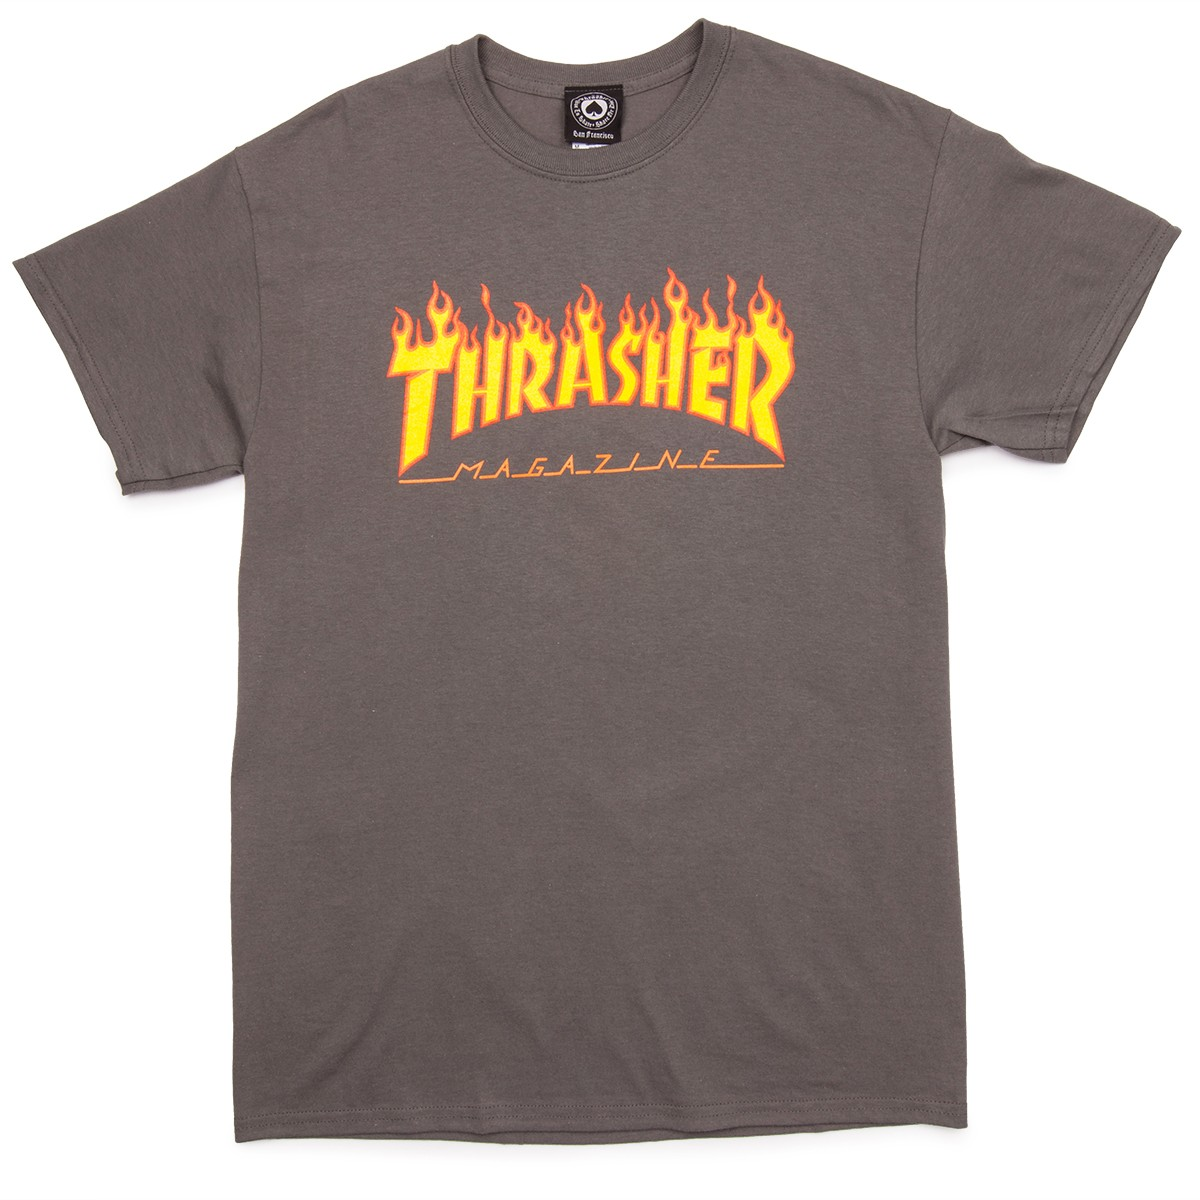 e1a188e0970c thrasher-flame-t-shirt-charcoal-1 4.1506696298.jpg